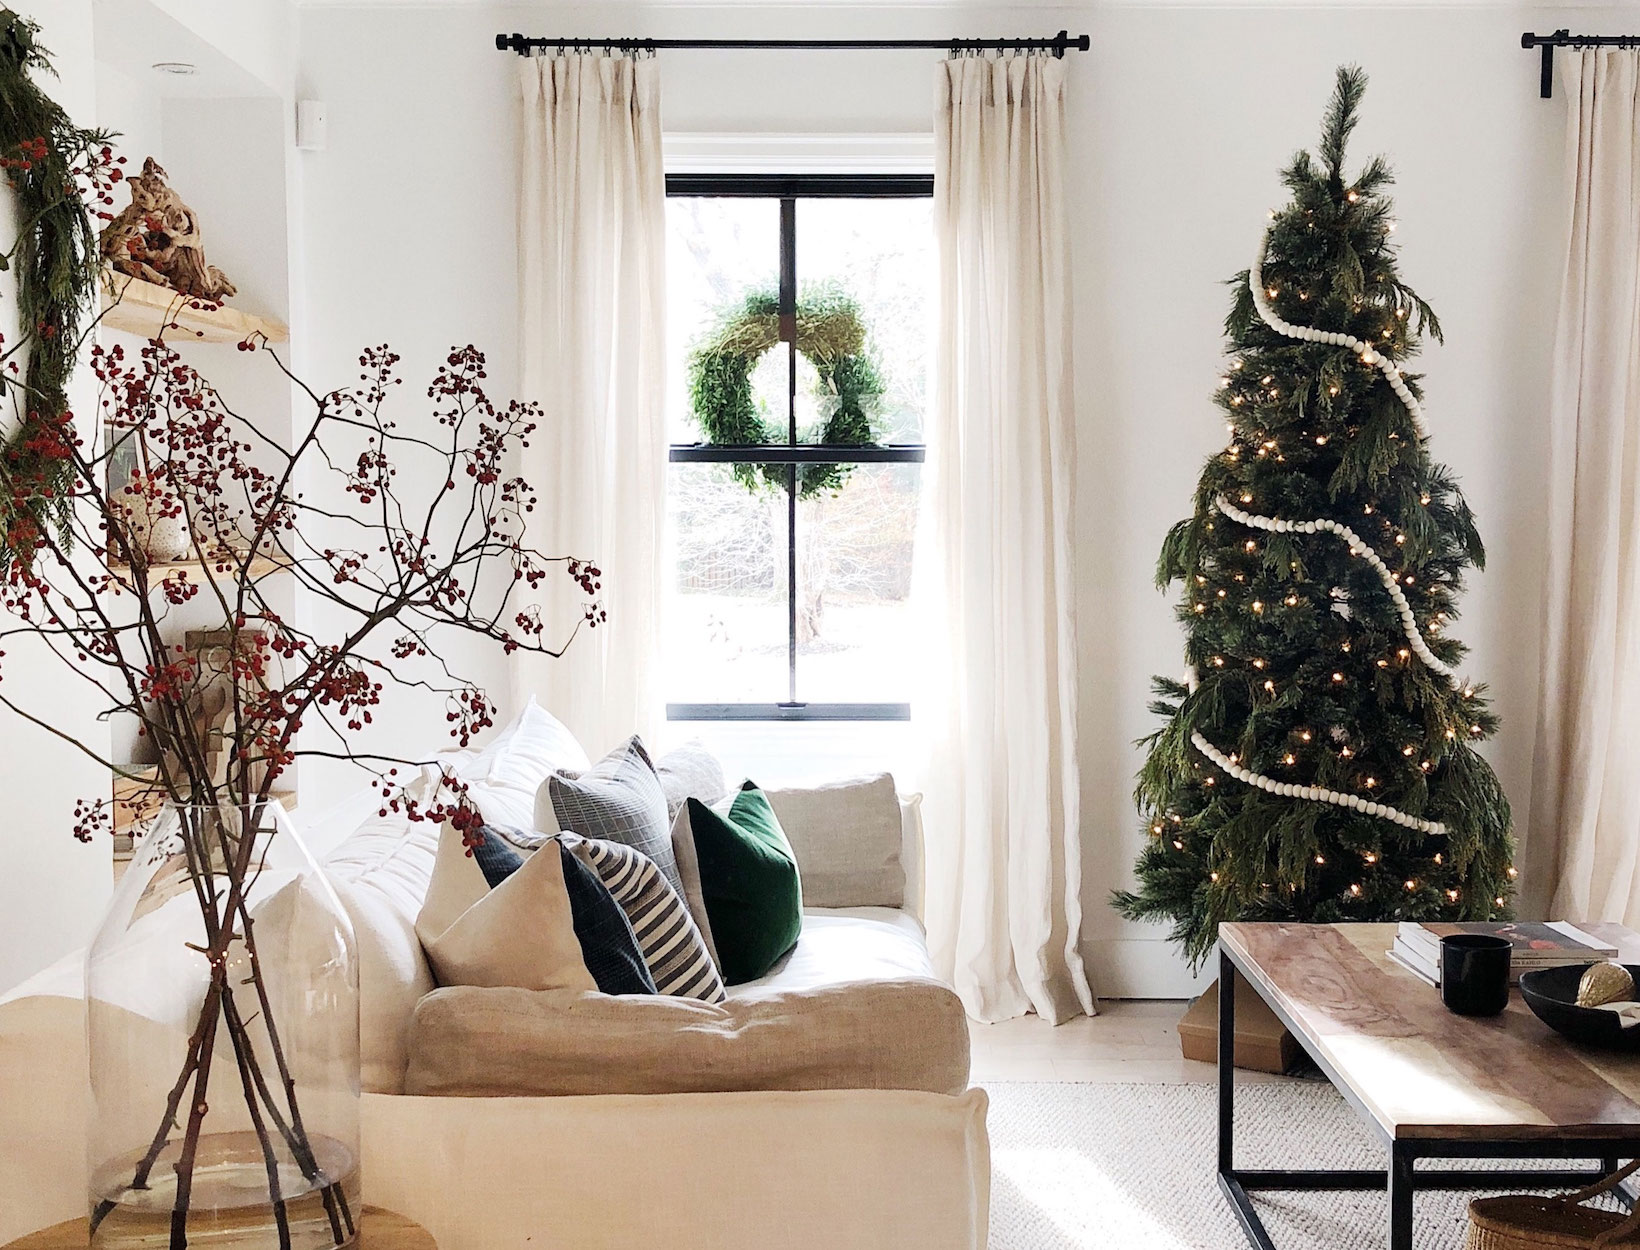 Home Accessories for the Holidays